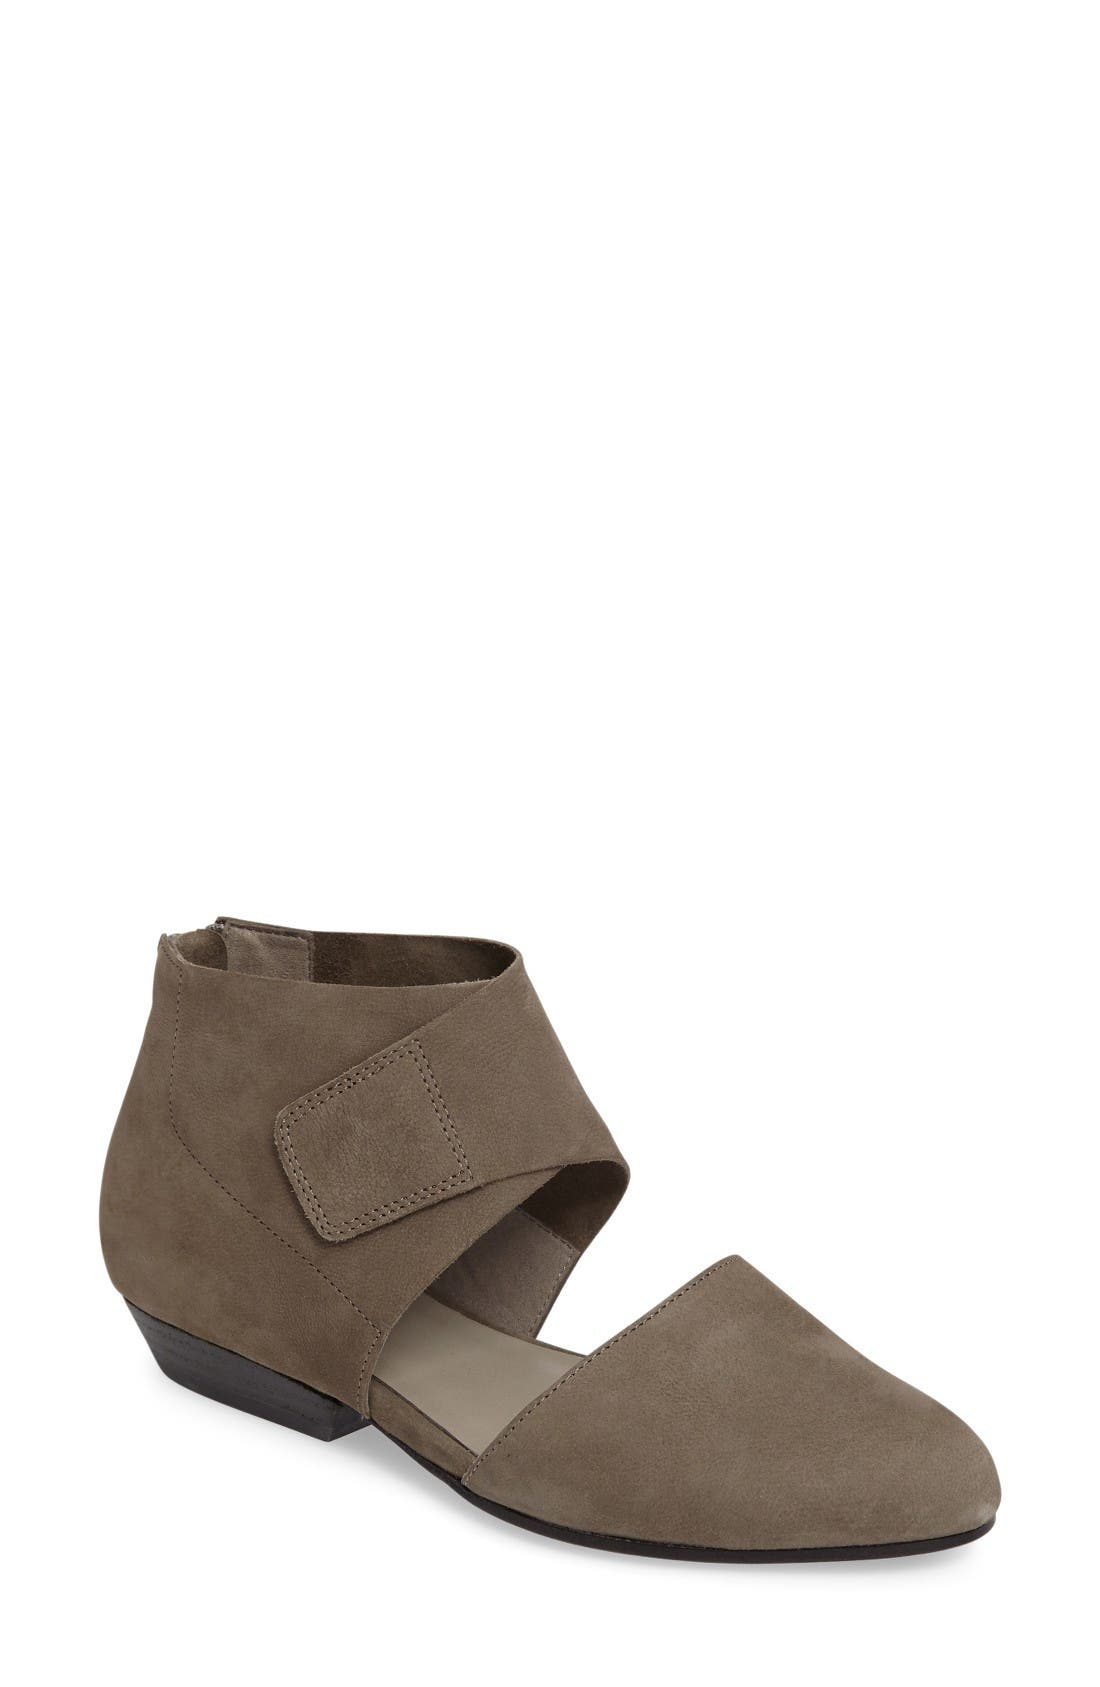 Main Image - Eileen Fisher Calia Ankle Cuffed Flat (Women)